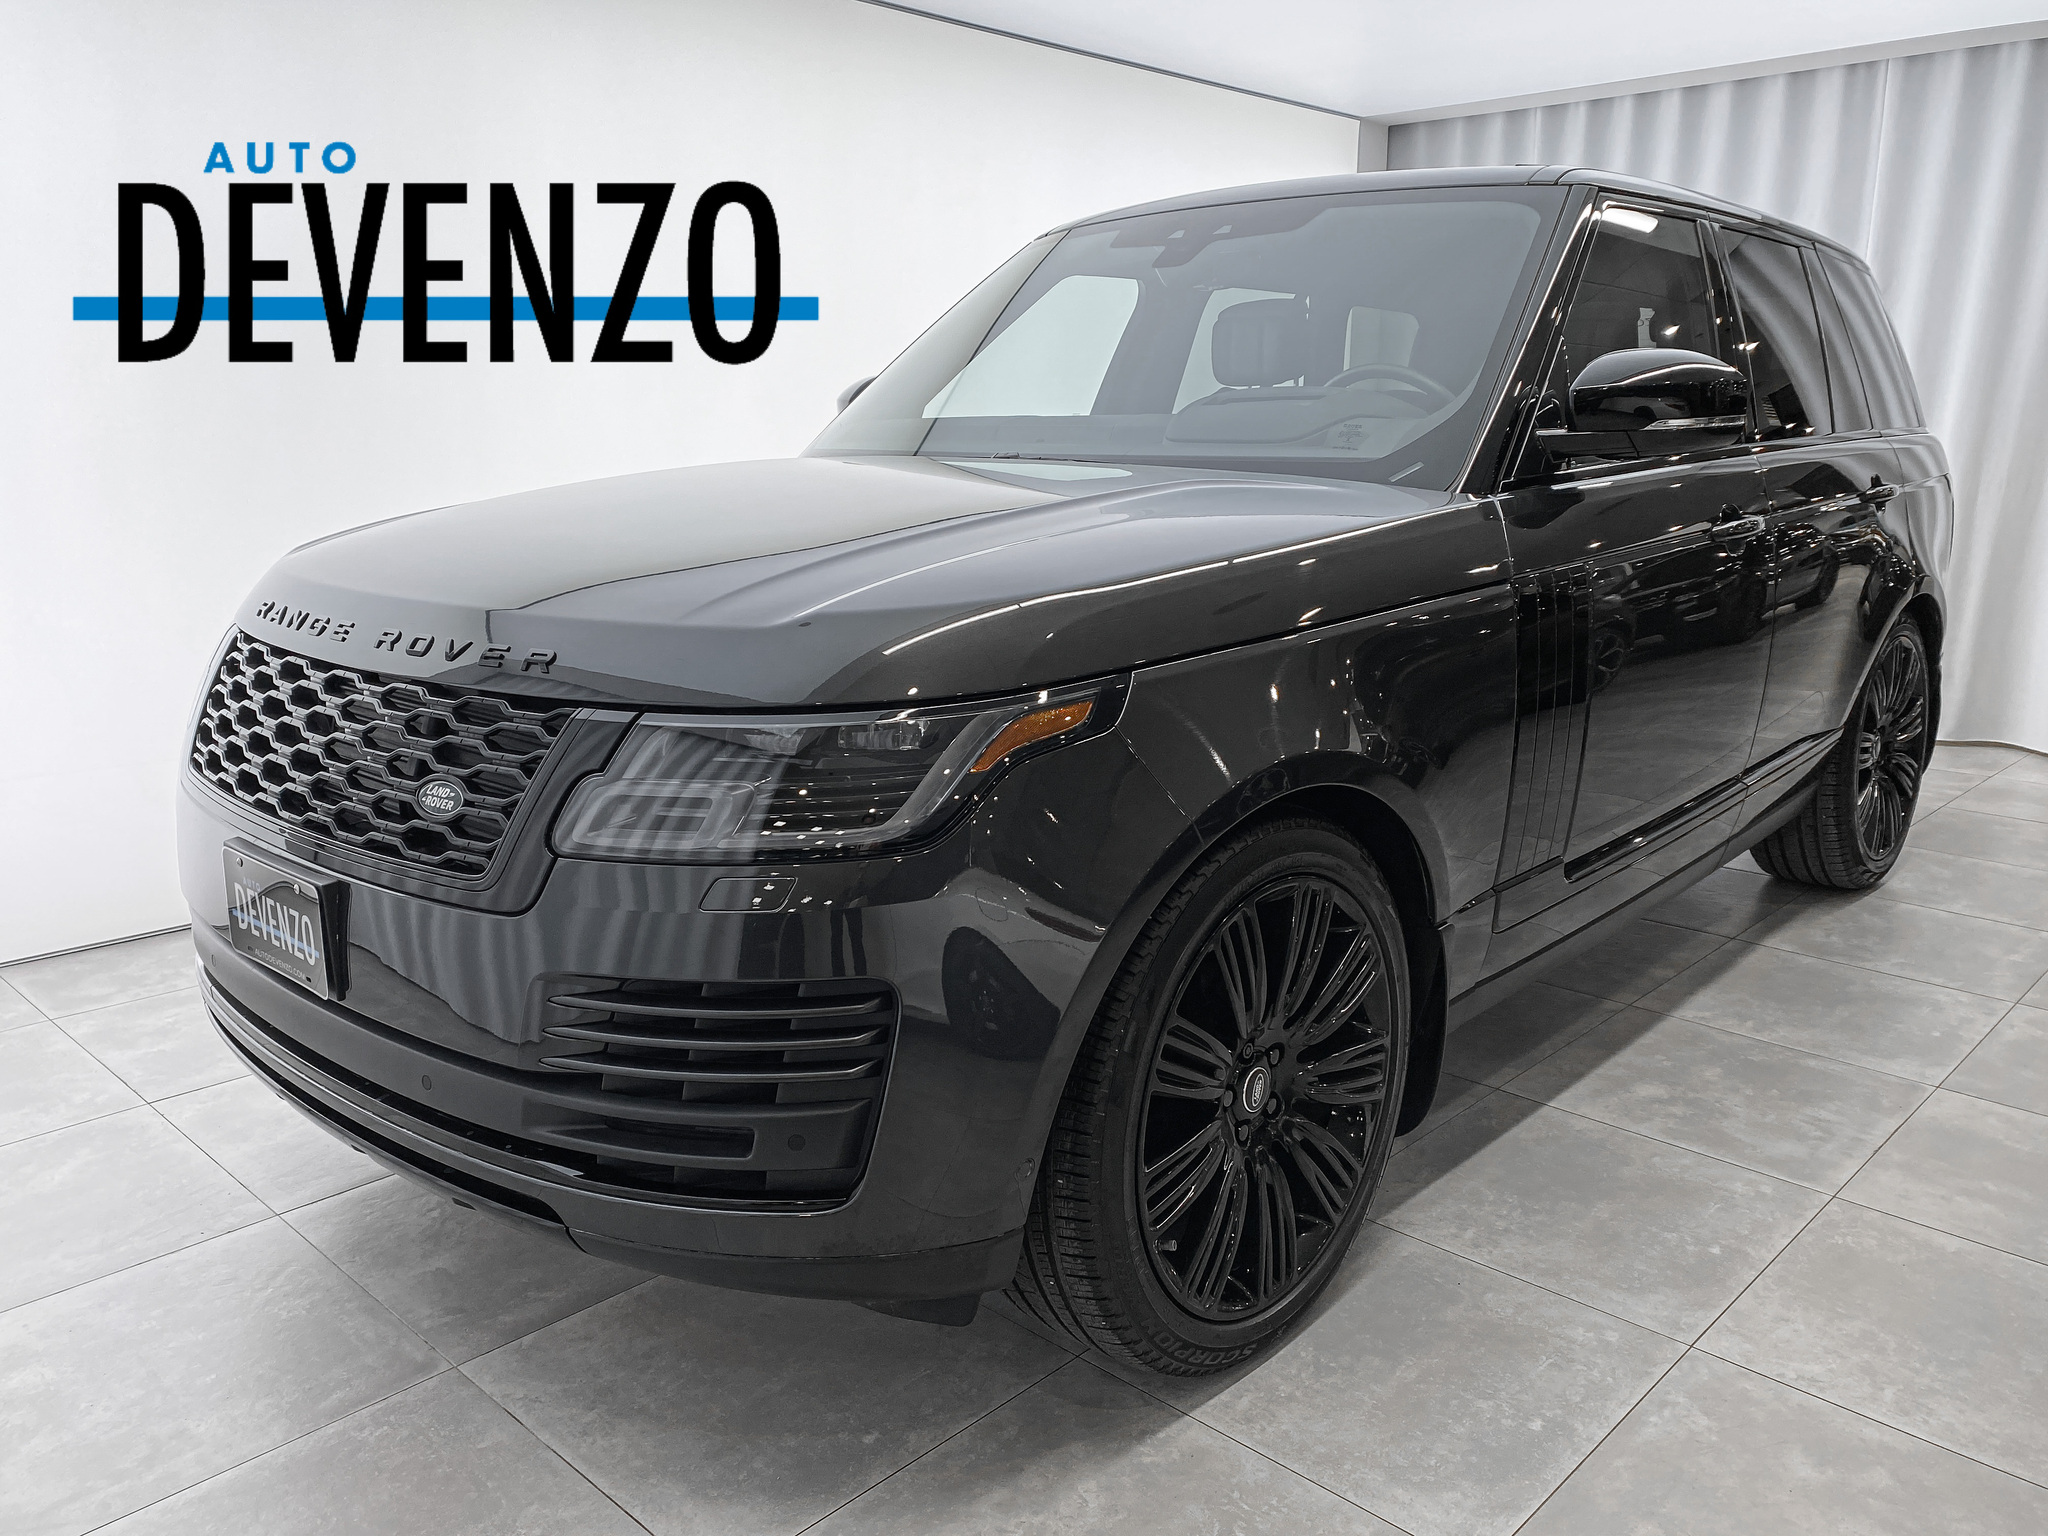 2019 Land Rover Range Rover Td6 Diesel HSE DRIVE PRO PACK / BLACK PACKAGE complet